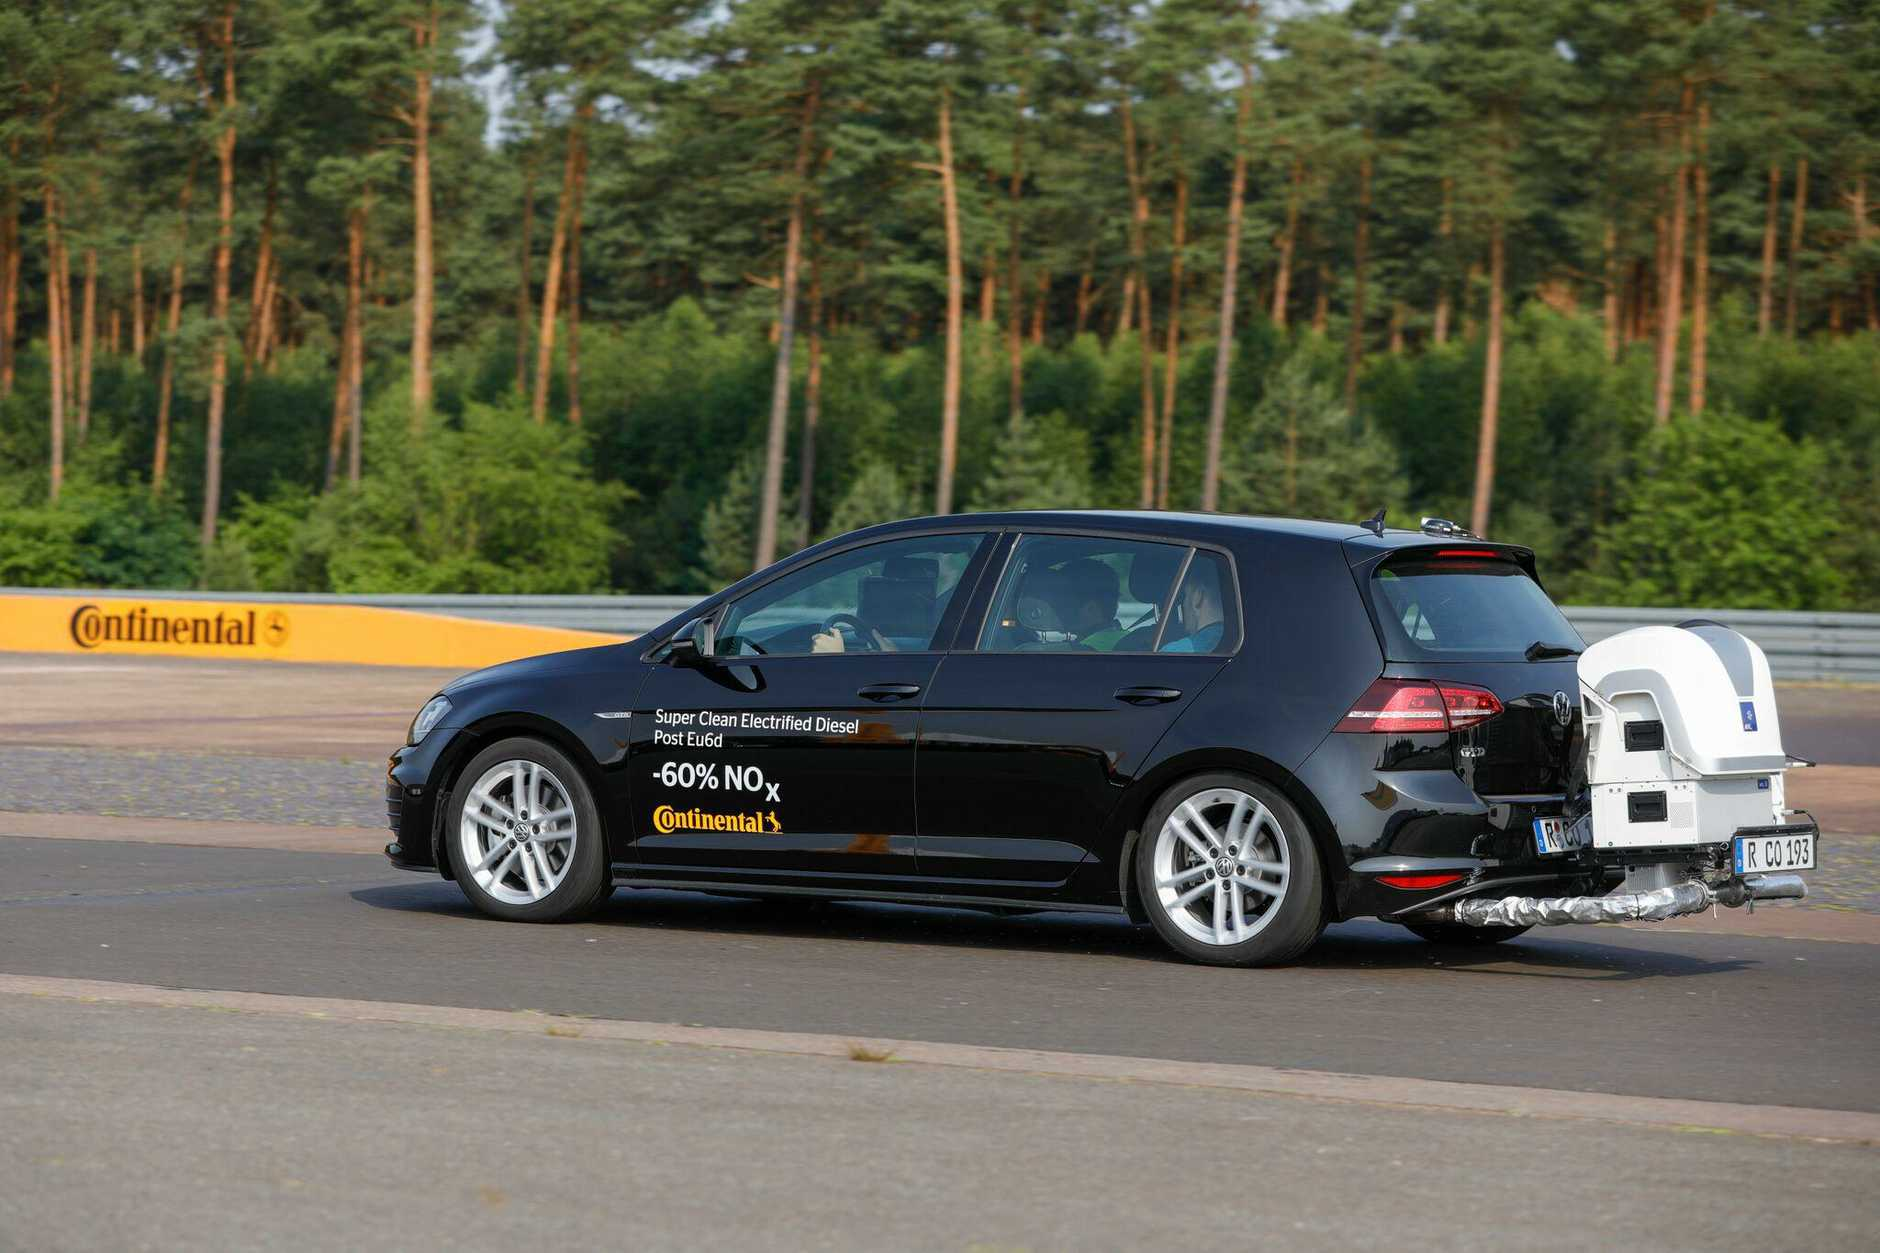 Continental's clean diesel Golf.